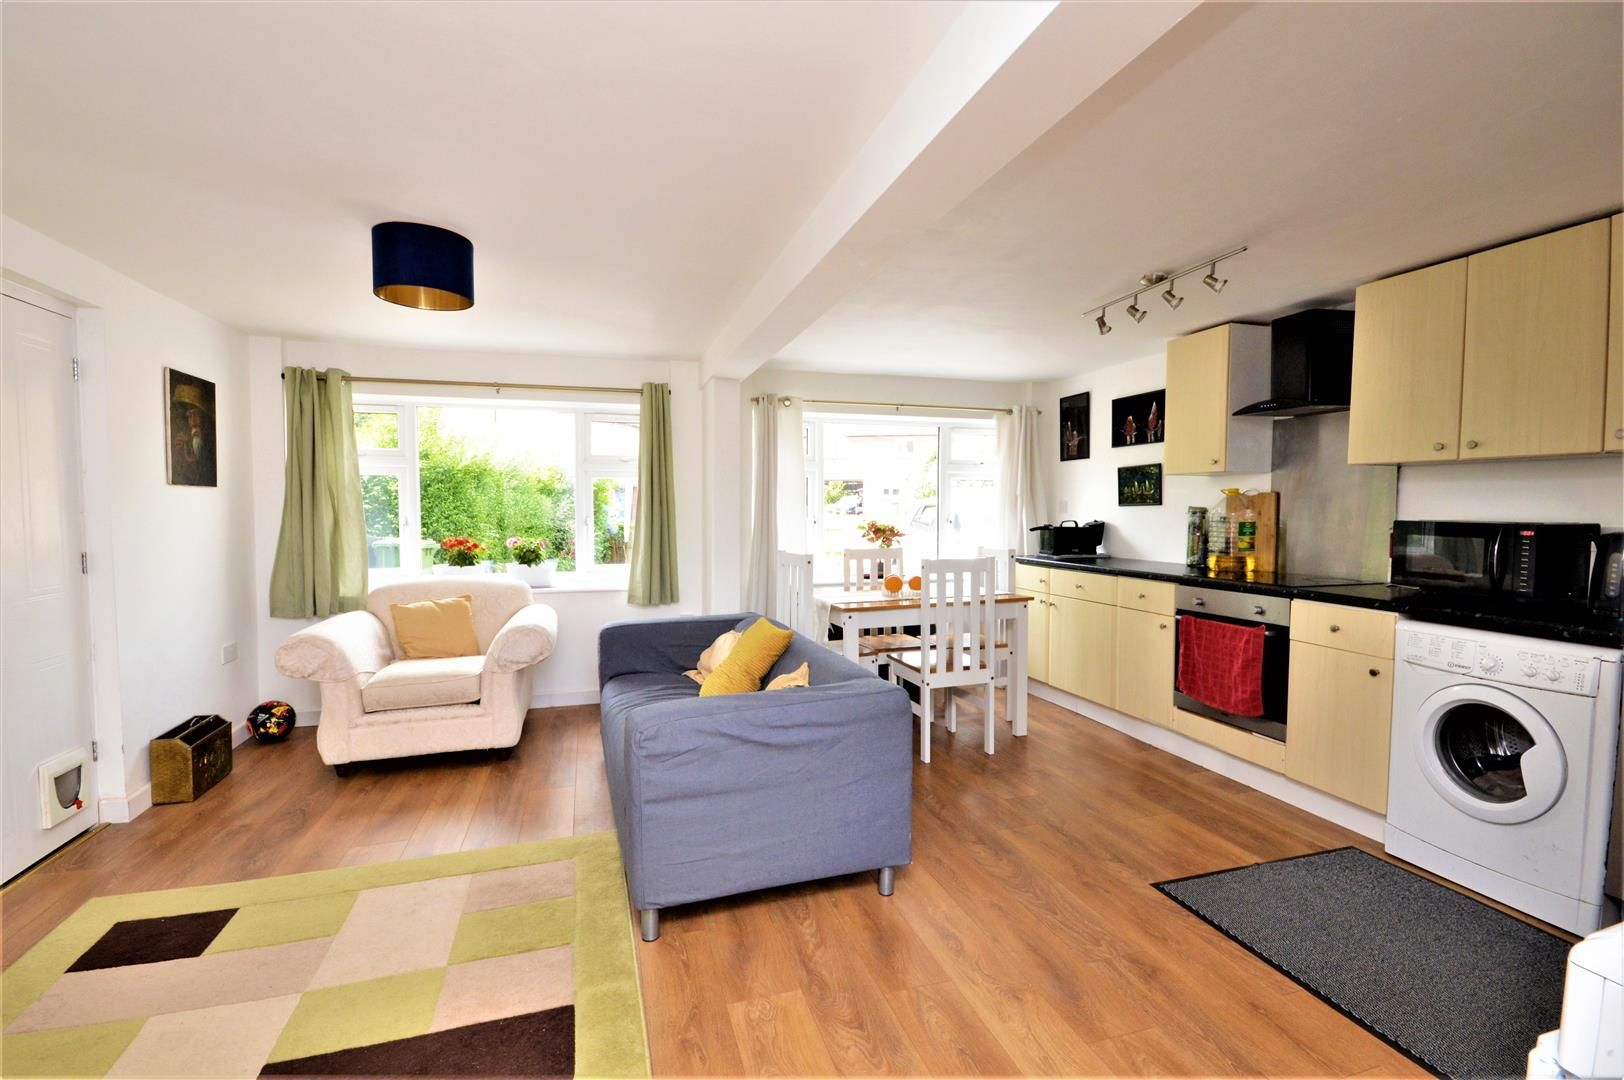 3 bed detached for sale in Belmont  - Property Image 2